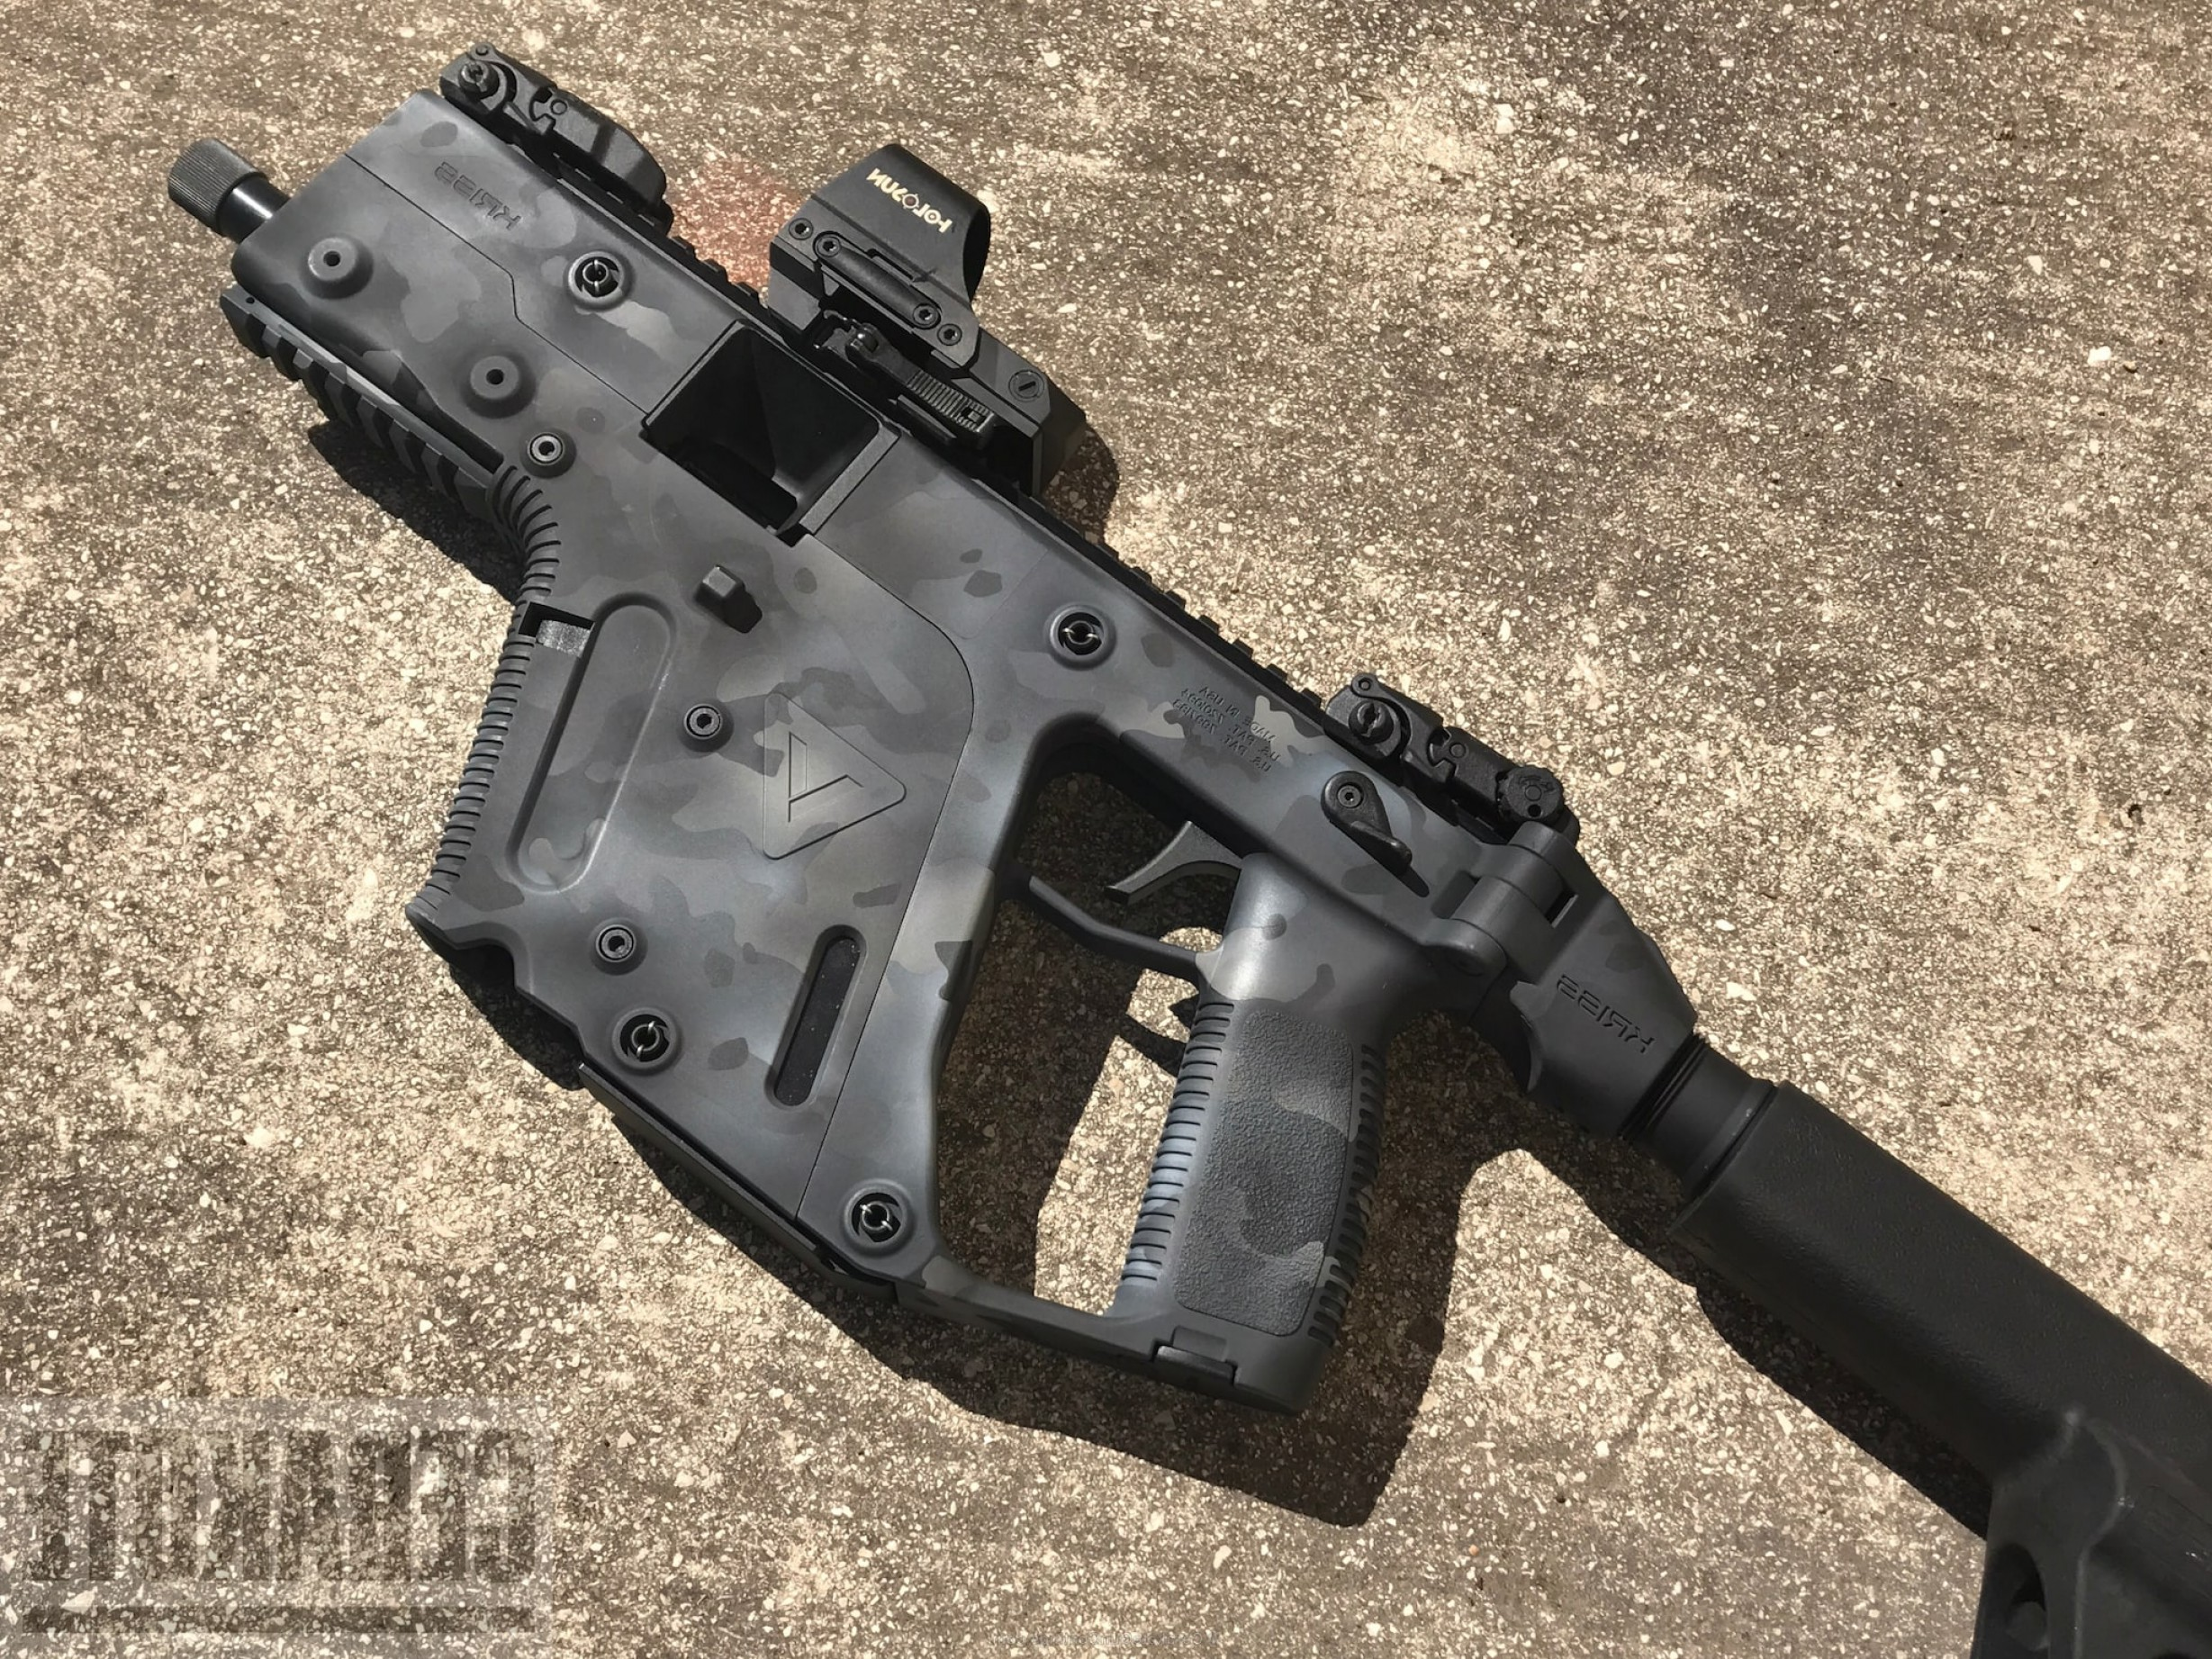 Painted Kriss Vector: Cerakote H Graphite Black H Magpul Stealth Grey H Armor Black H Battleship Grey And H Combat Grey